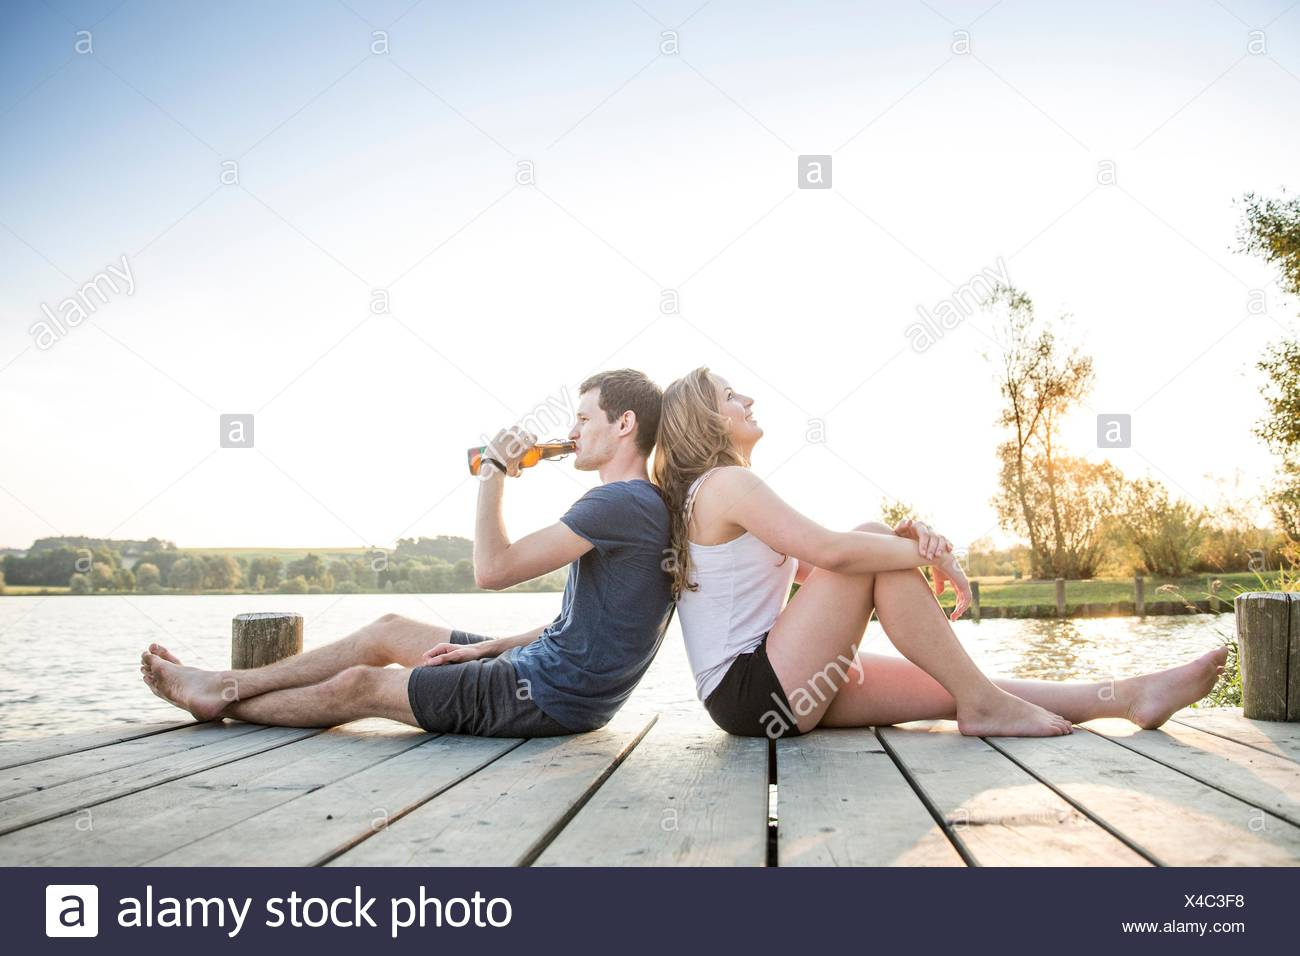 Young couple relaxing on jetty, sitting back to back - Stock Image